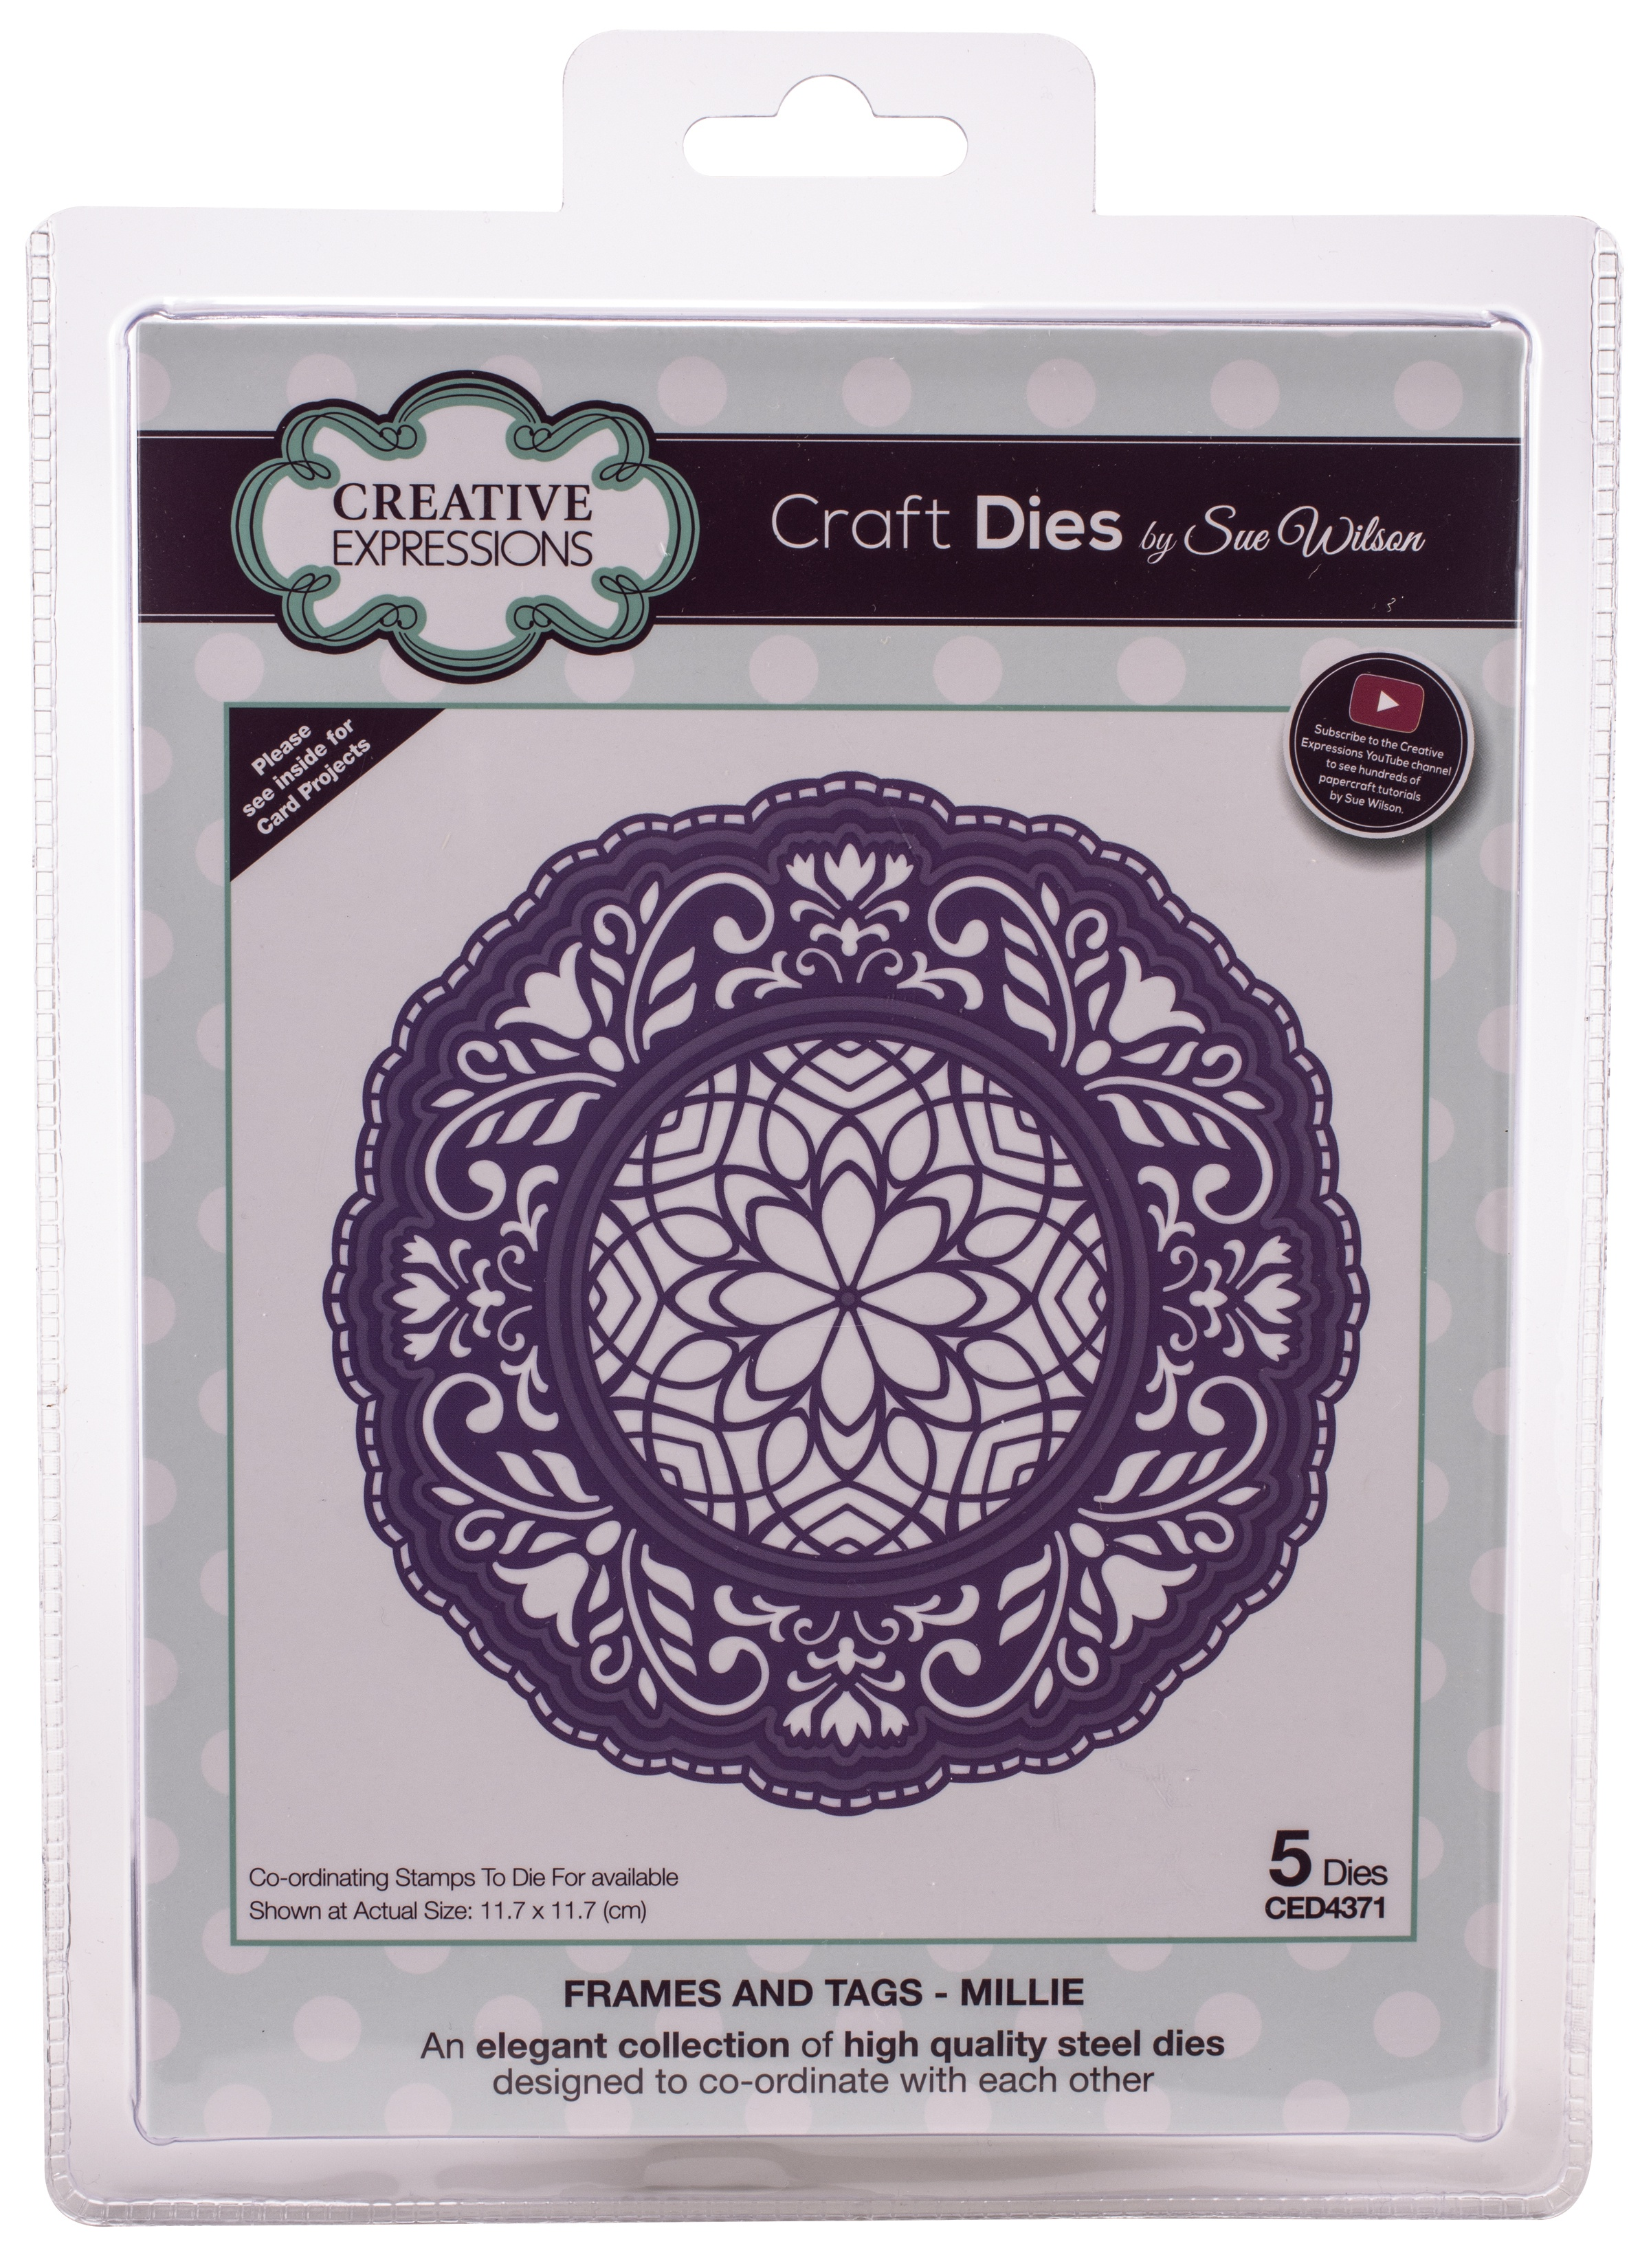 Creative Expressions Craft Dies By Sue Wilson-Frames & Tags-Millie